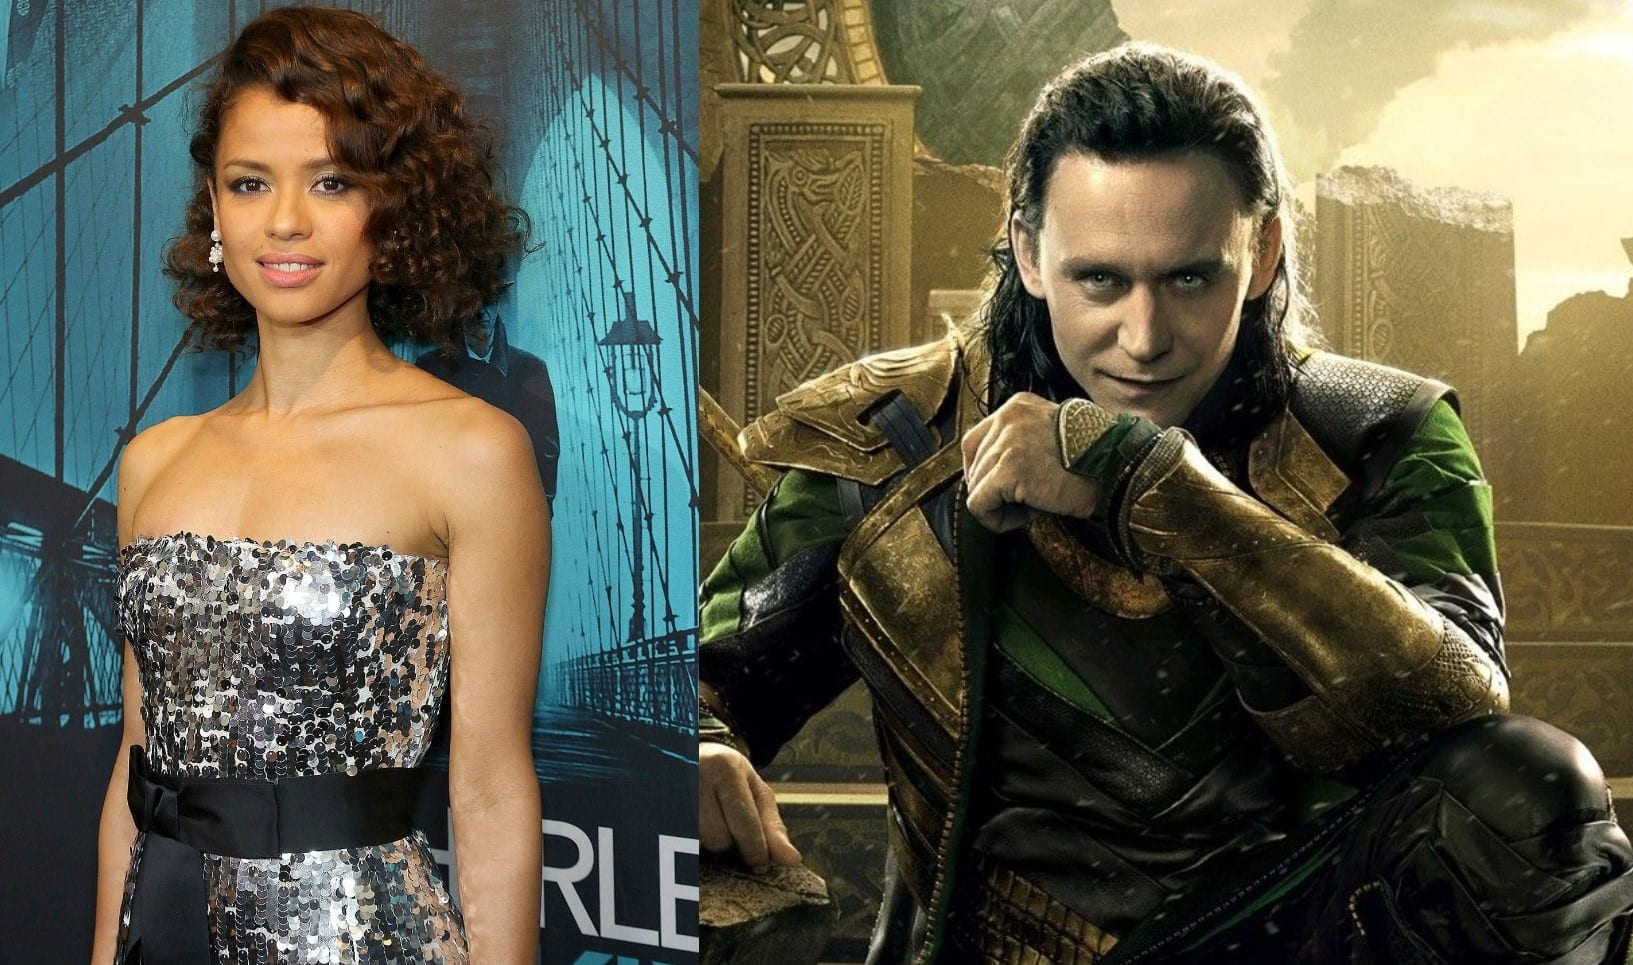 Loki star Gugu Mbatha-Raw confirms production has resumed